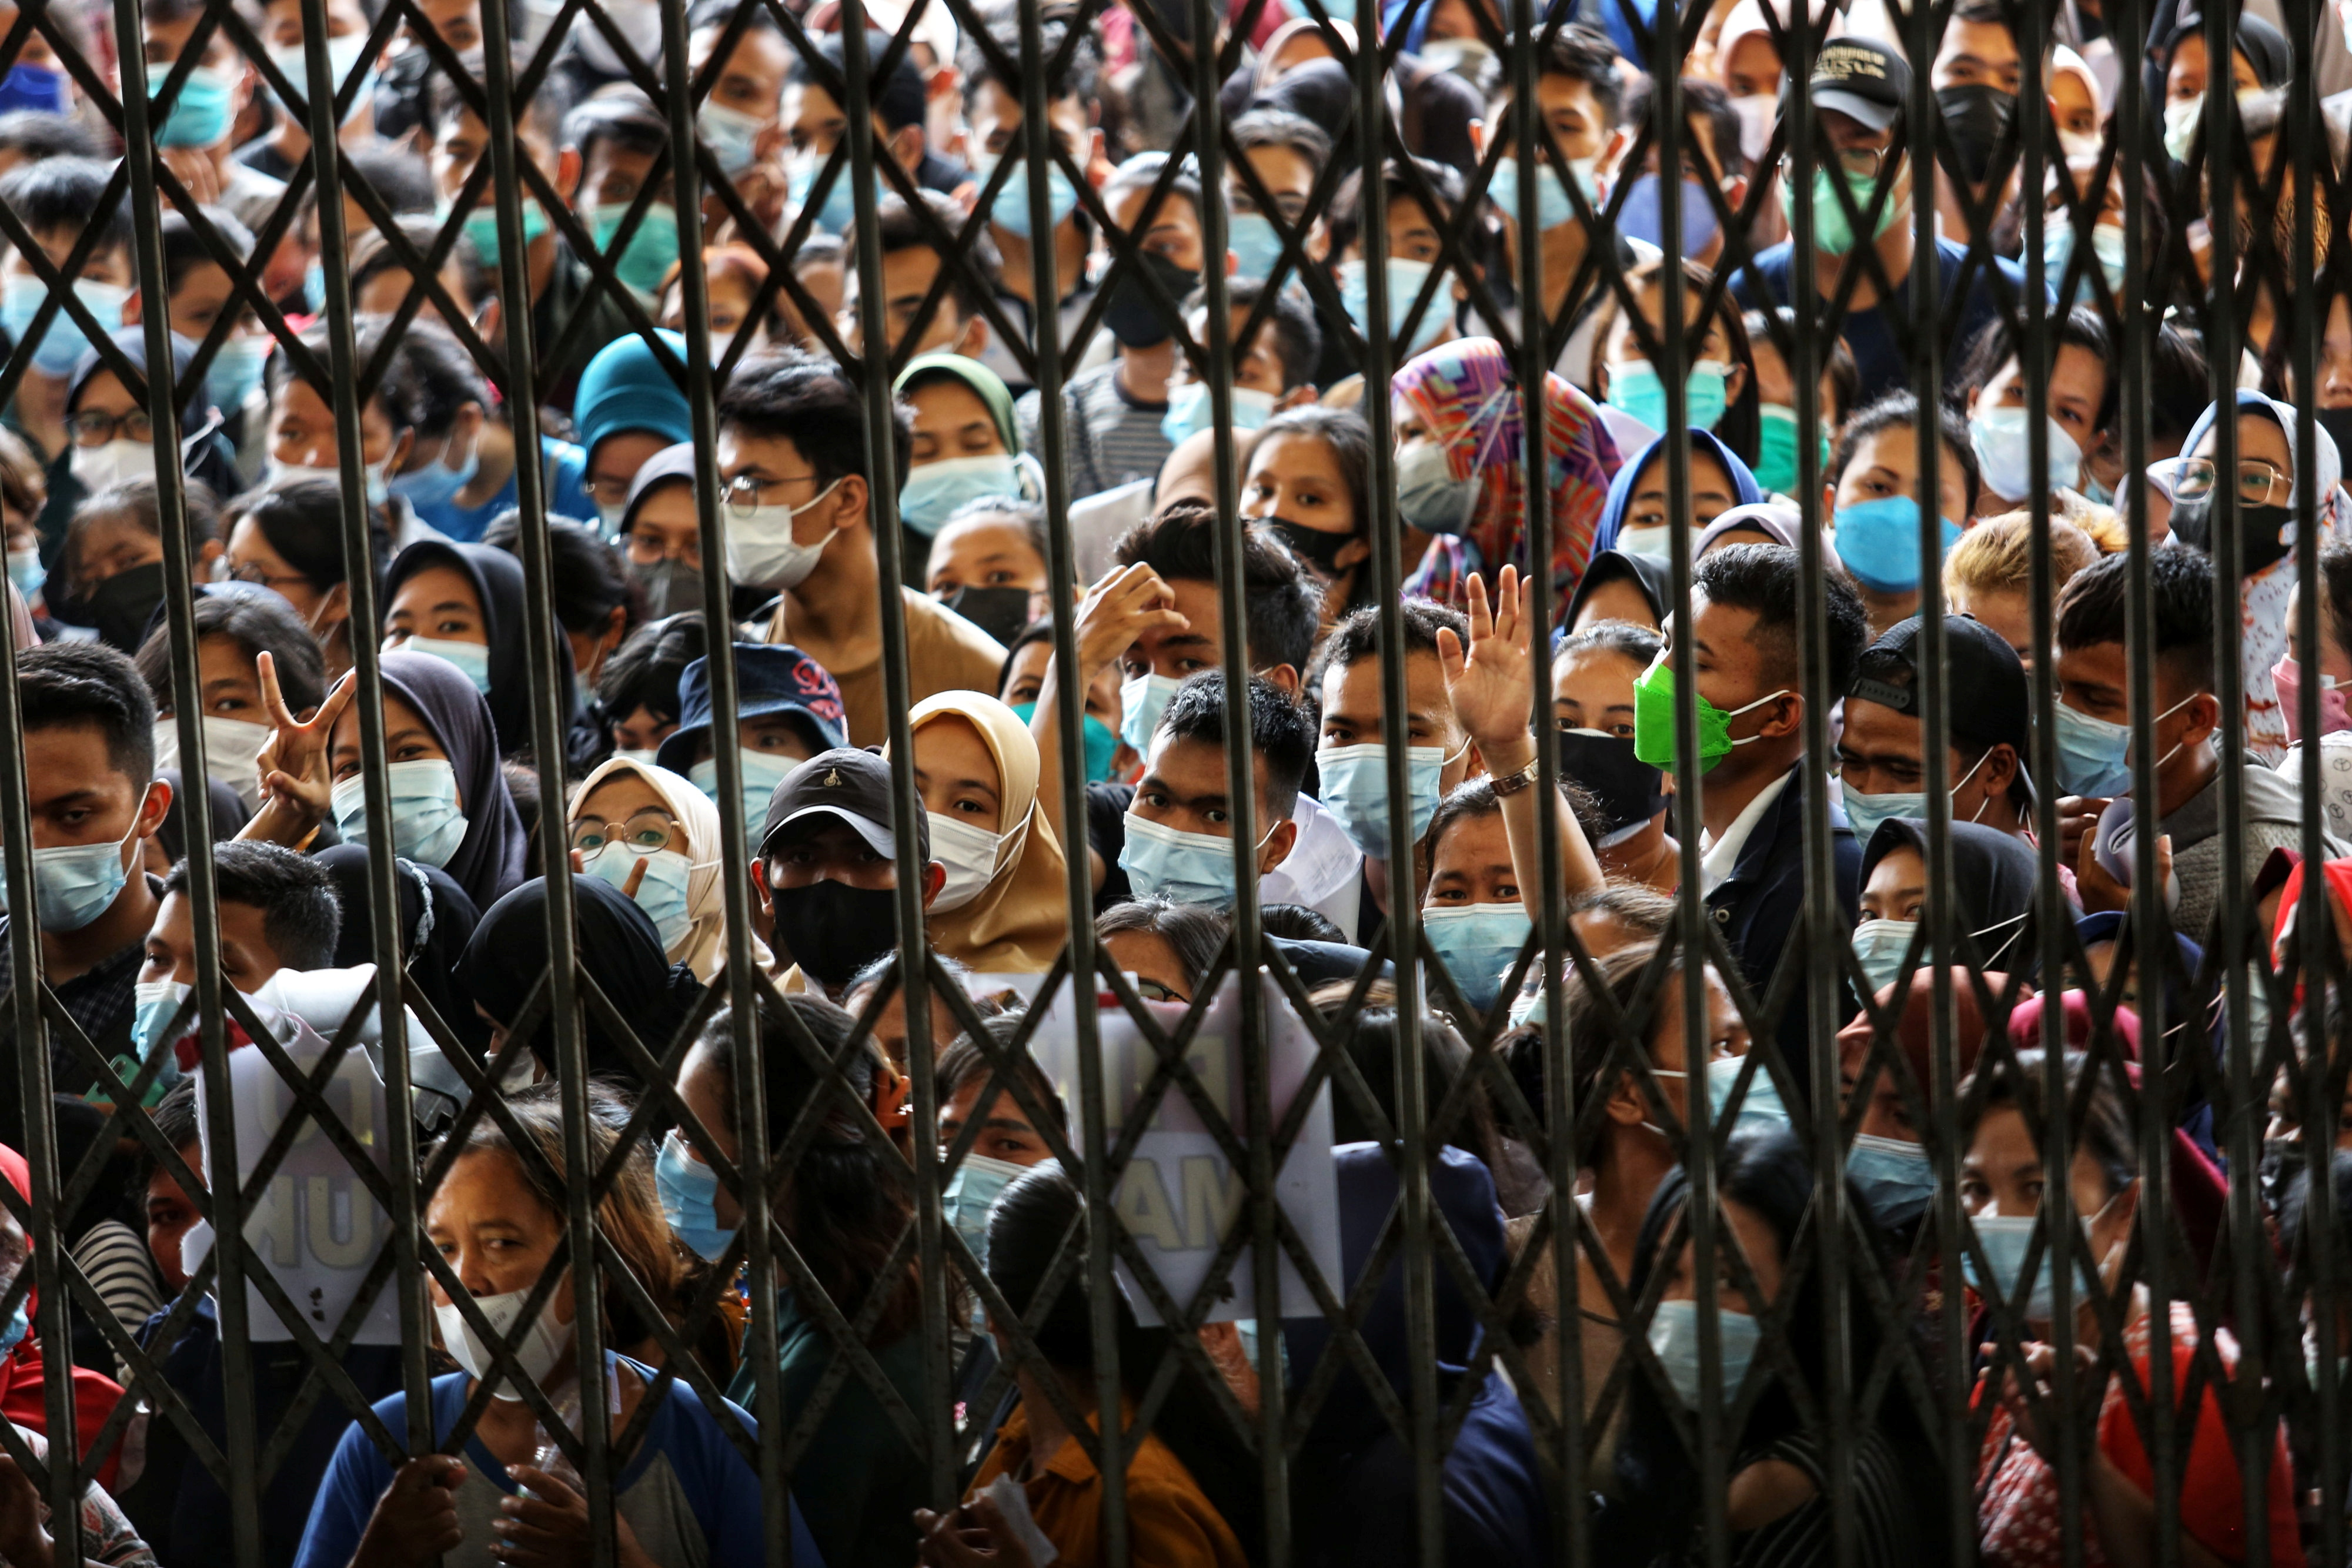 People wearing protective face masks stand in line wait to receiving a dose of the vaccine against the coronavirus disease (COVID-19), during a vaccination program at the provincial government building in Medan, North Sumatra province, Indonesia August 3, 2021, Picture taken August 3, 2021. Antara Foto/Fransisco Carolio/via Reuters